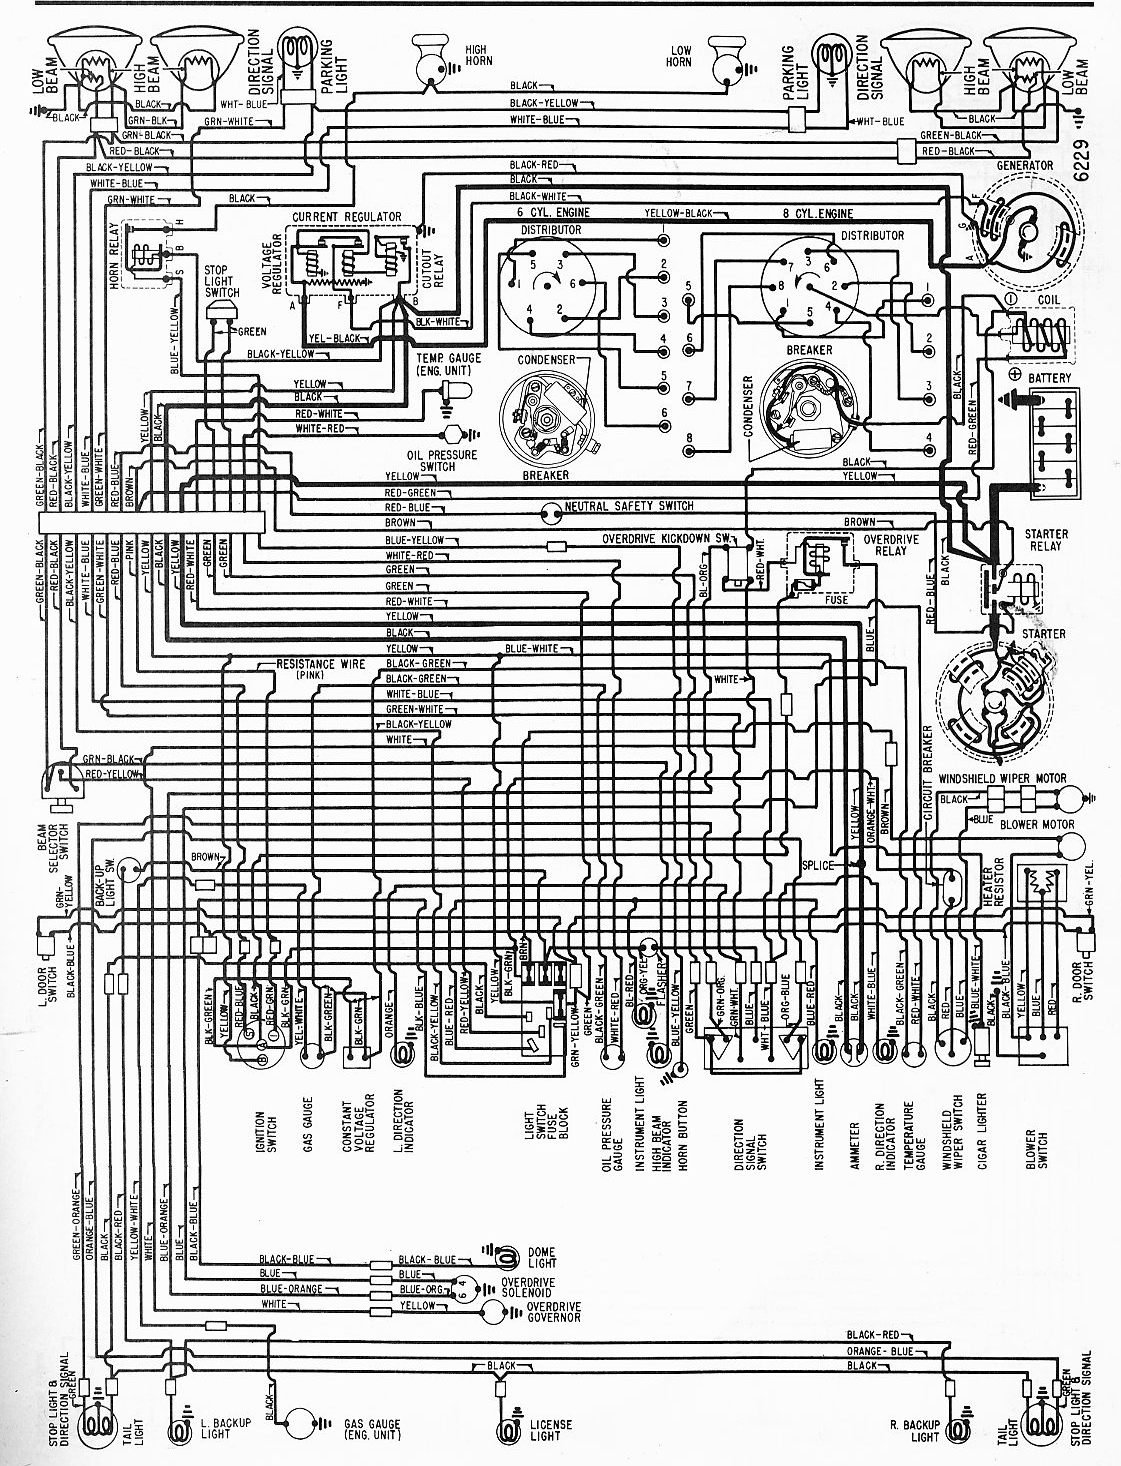 2012 11 08_045222_62_f100_wiring_diagram wiring diagram for 1972 ford f100 the wiring diagram 1971 ford f250 wiring diagram at mifinder.co